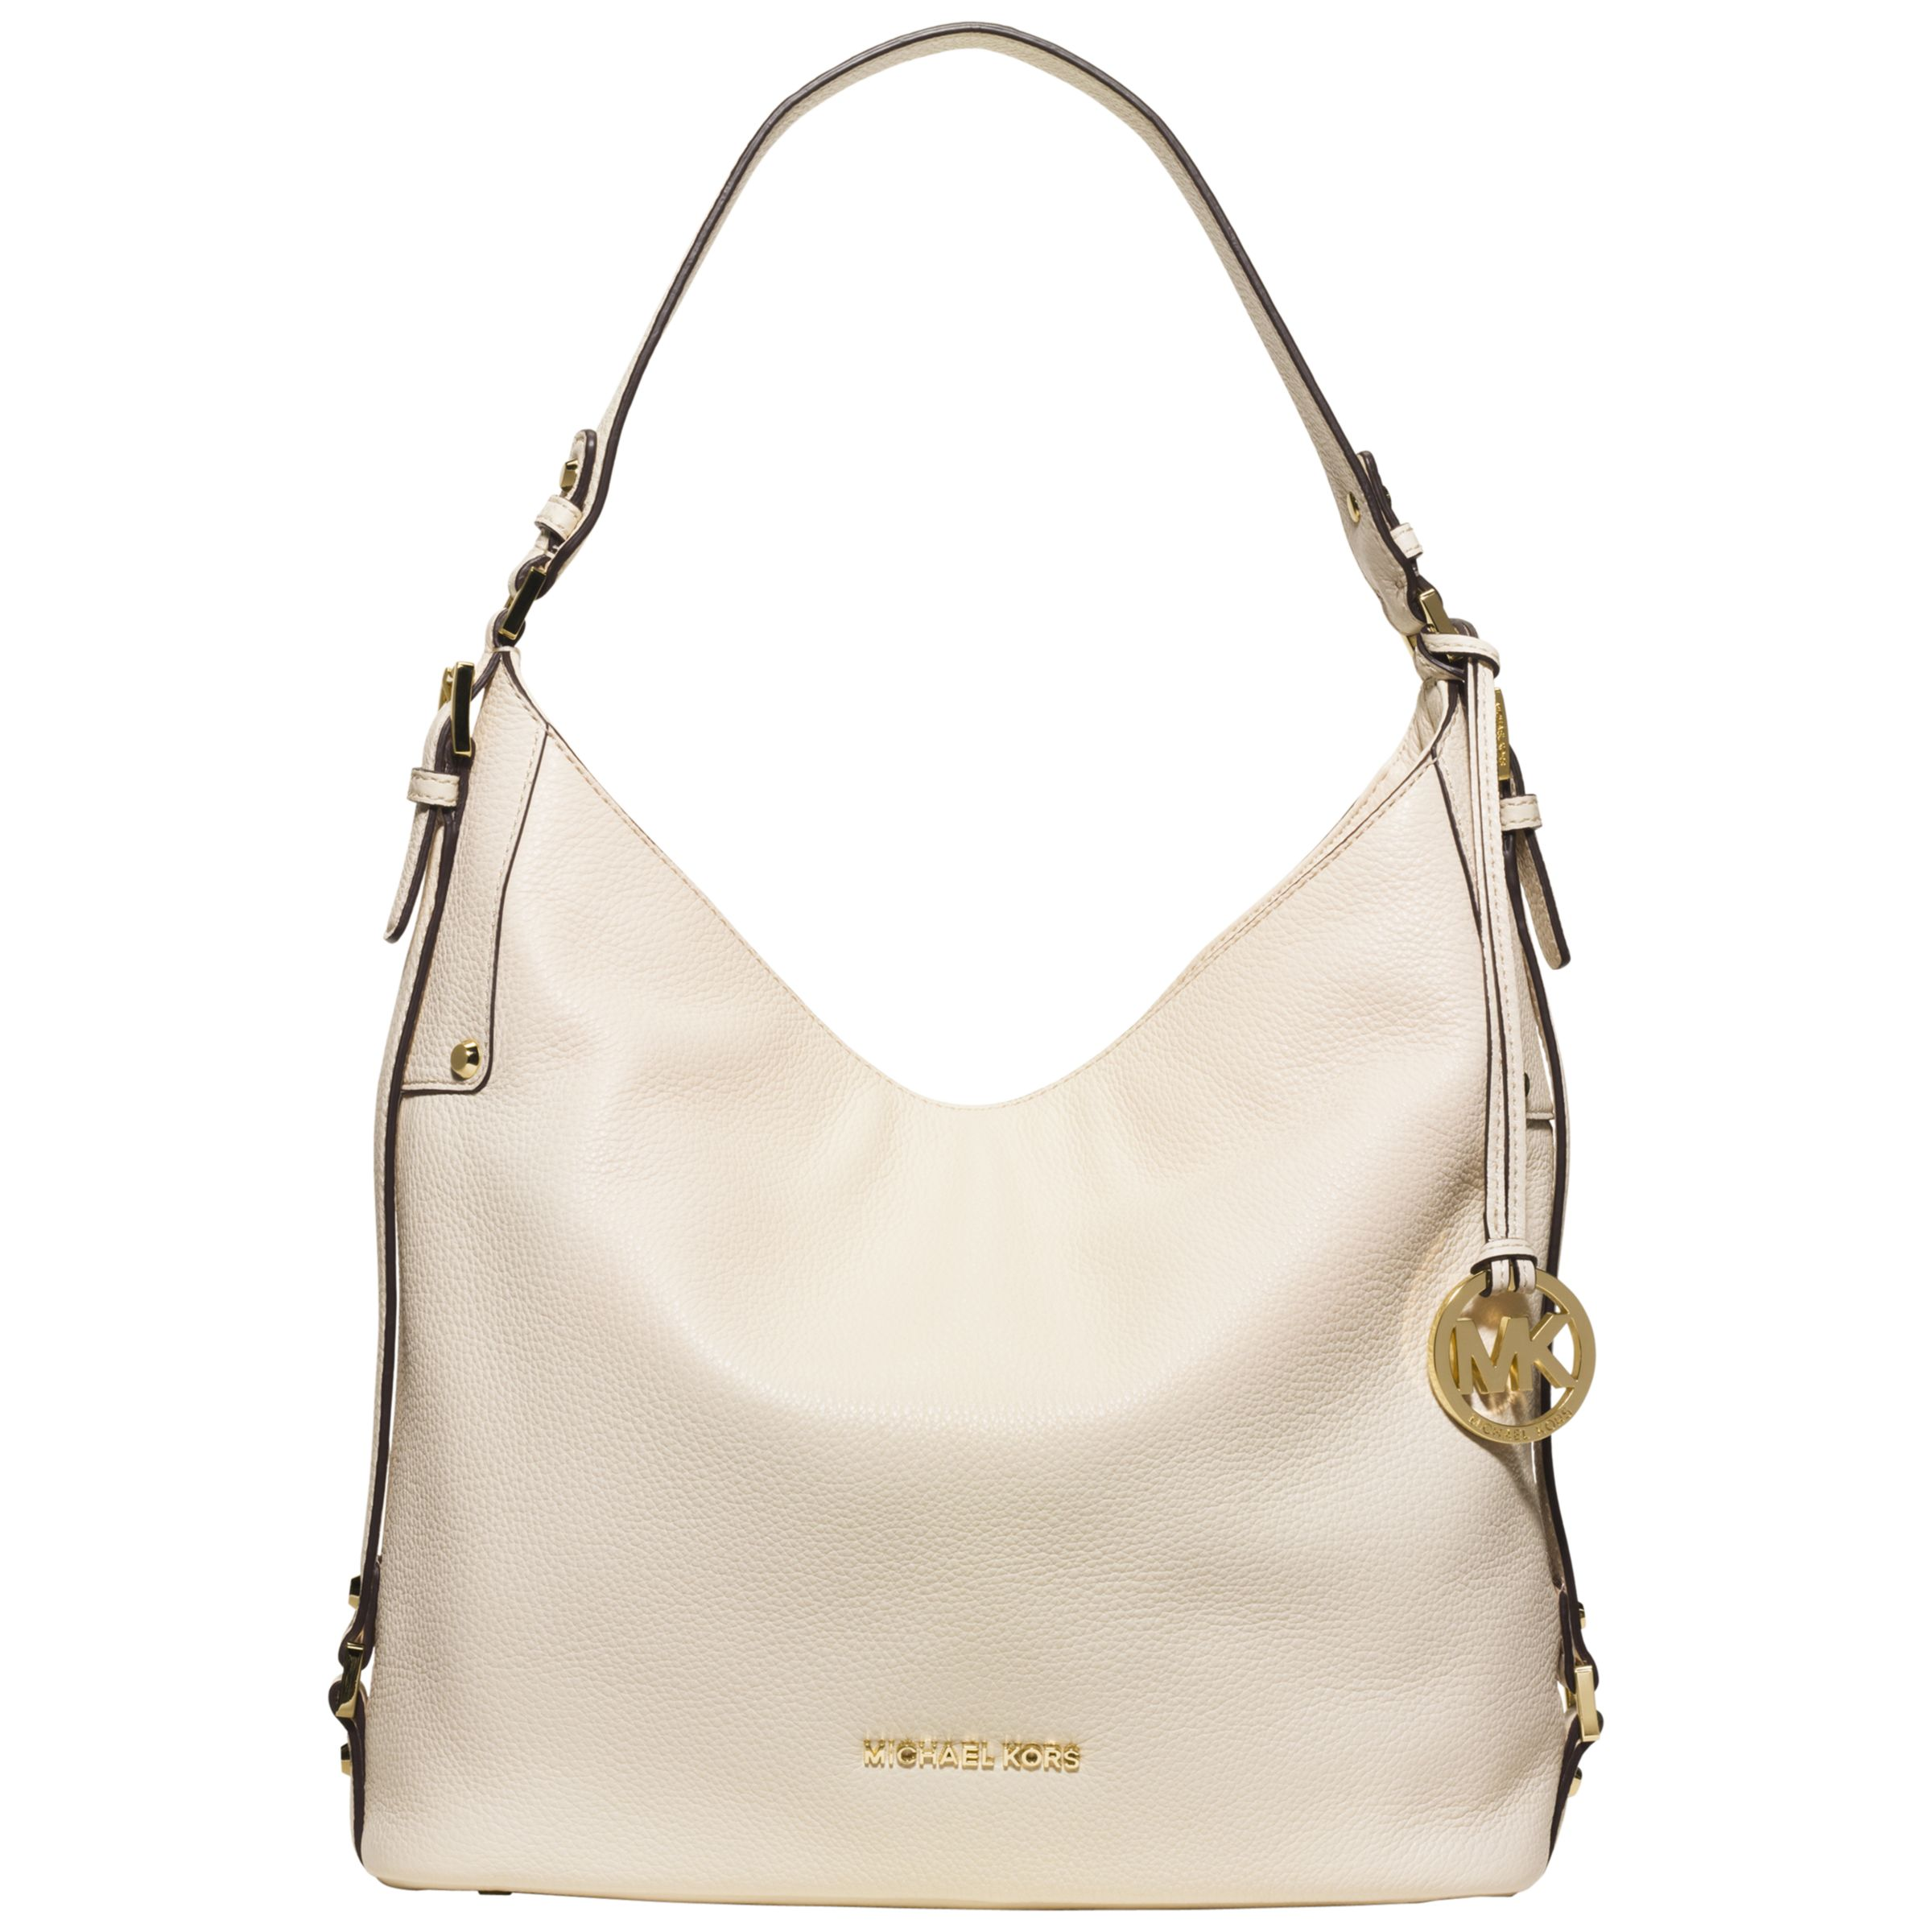 0f49eb364617a9 MICHAEL Michael Kors Bedford Belted Large Leather Shoulder Bag at John  Lewis & Partners